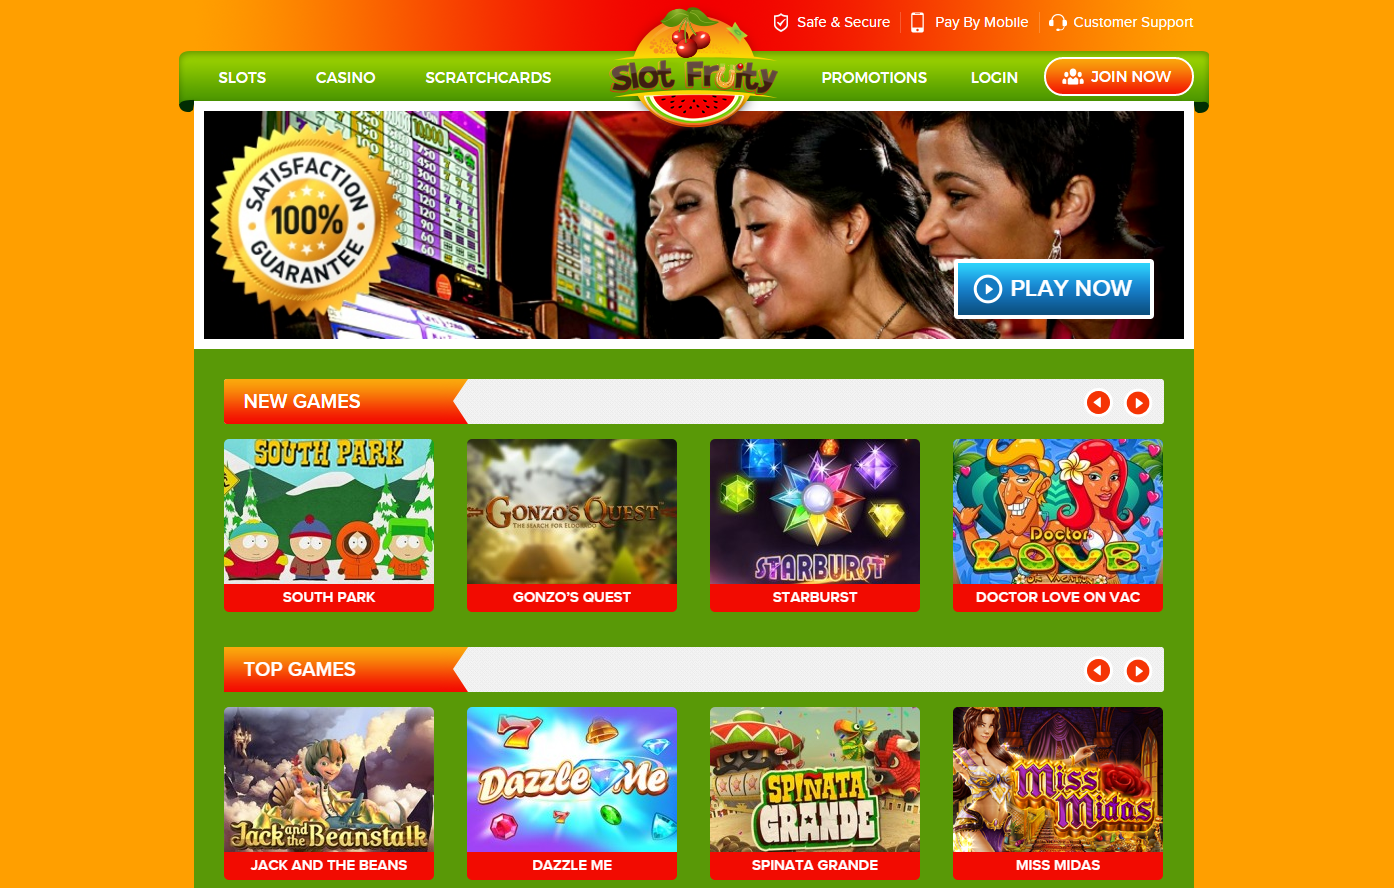 daily free spins slotfruity casino